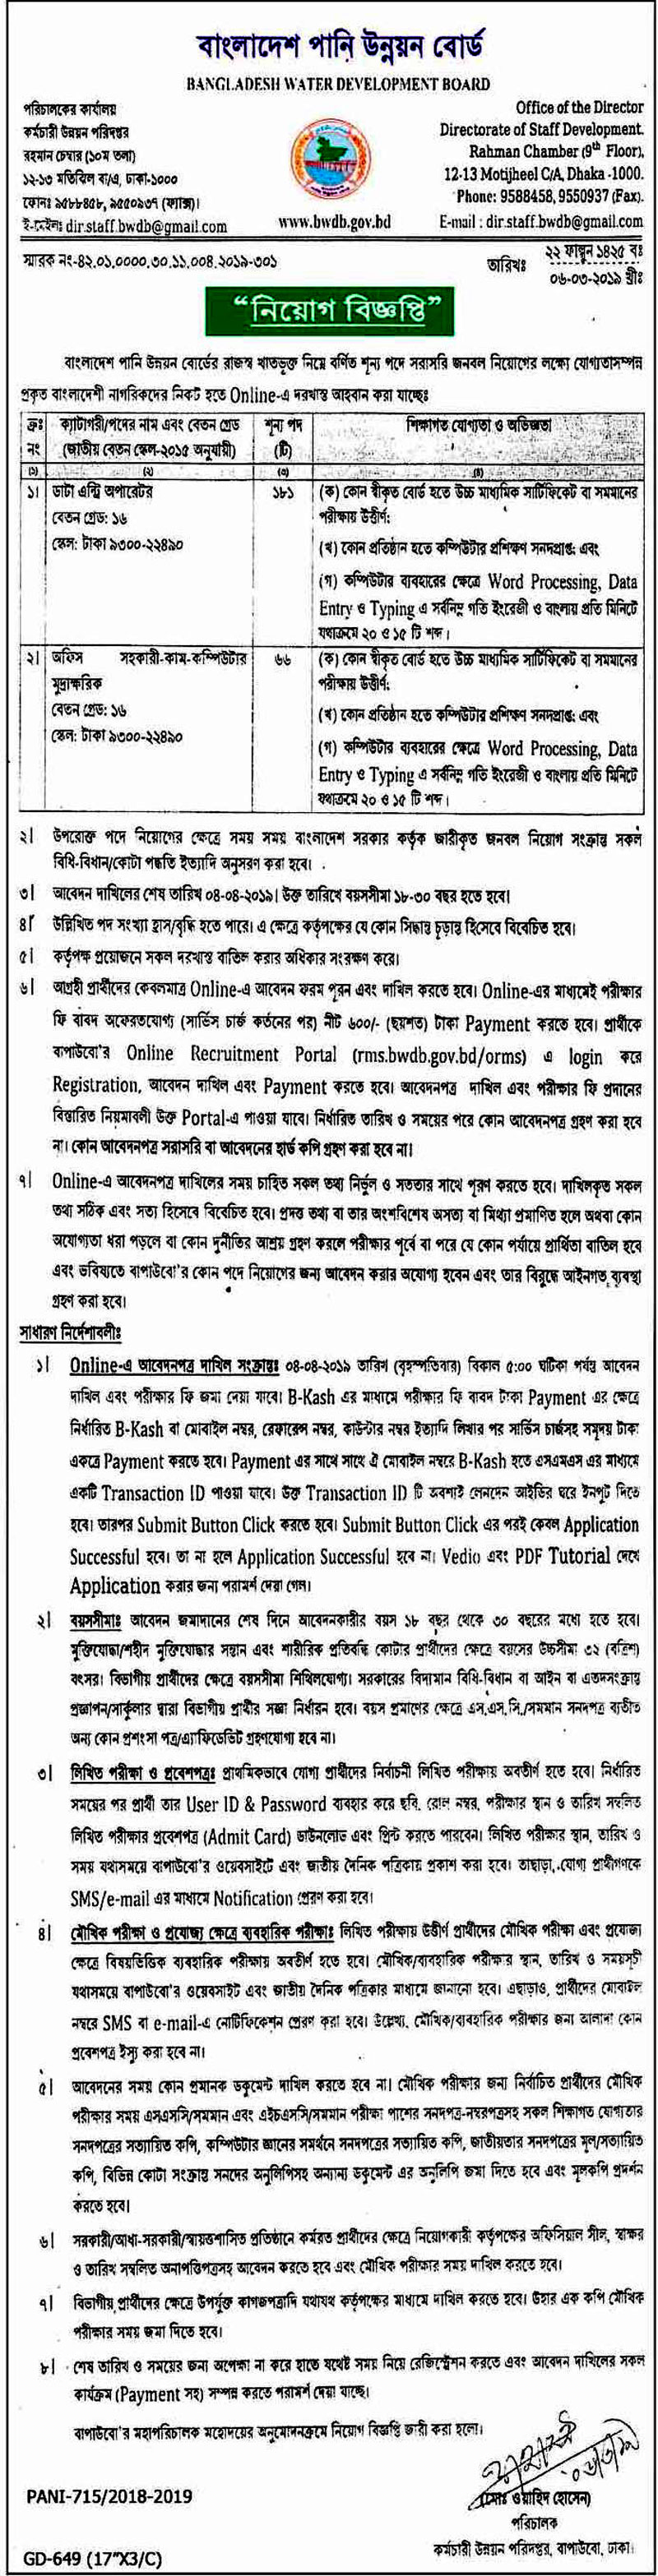 Water Development Board Job 2019